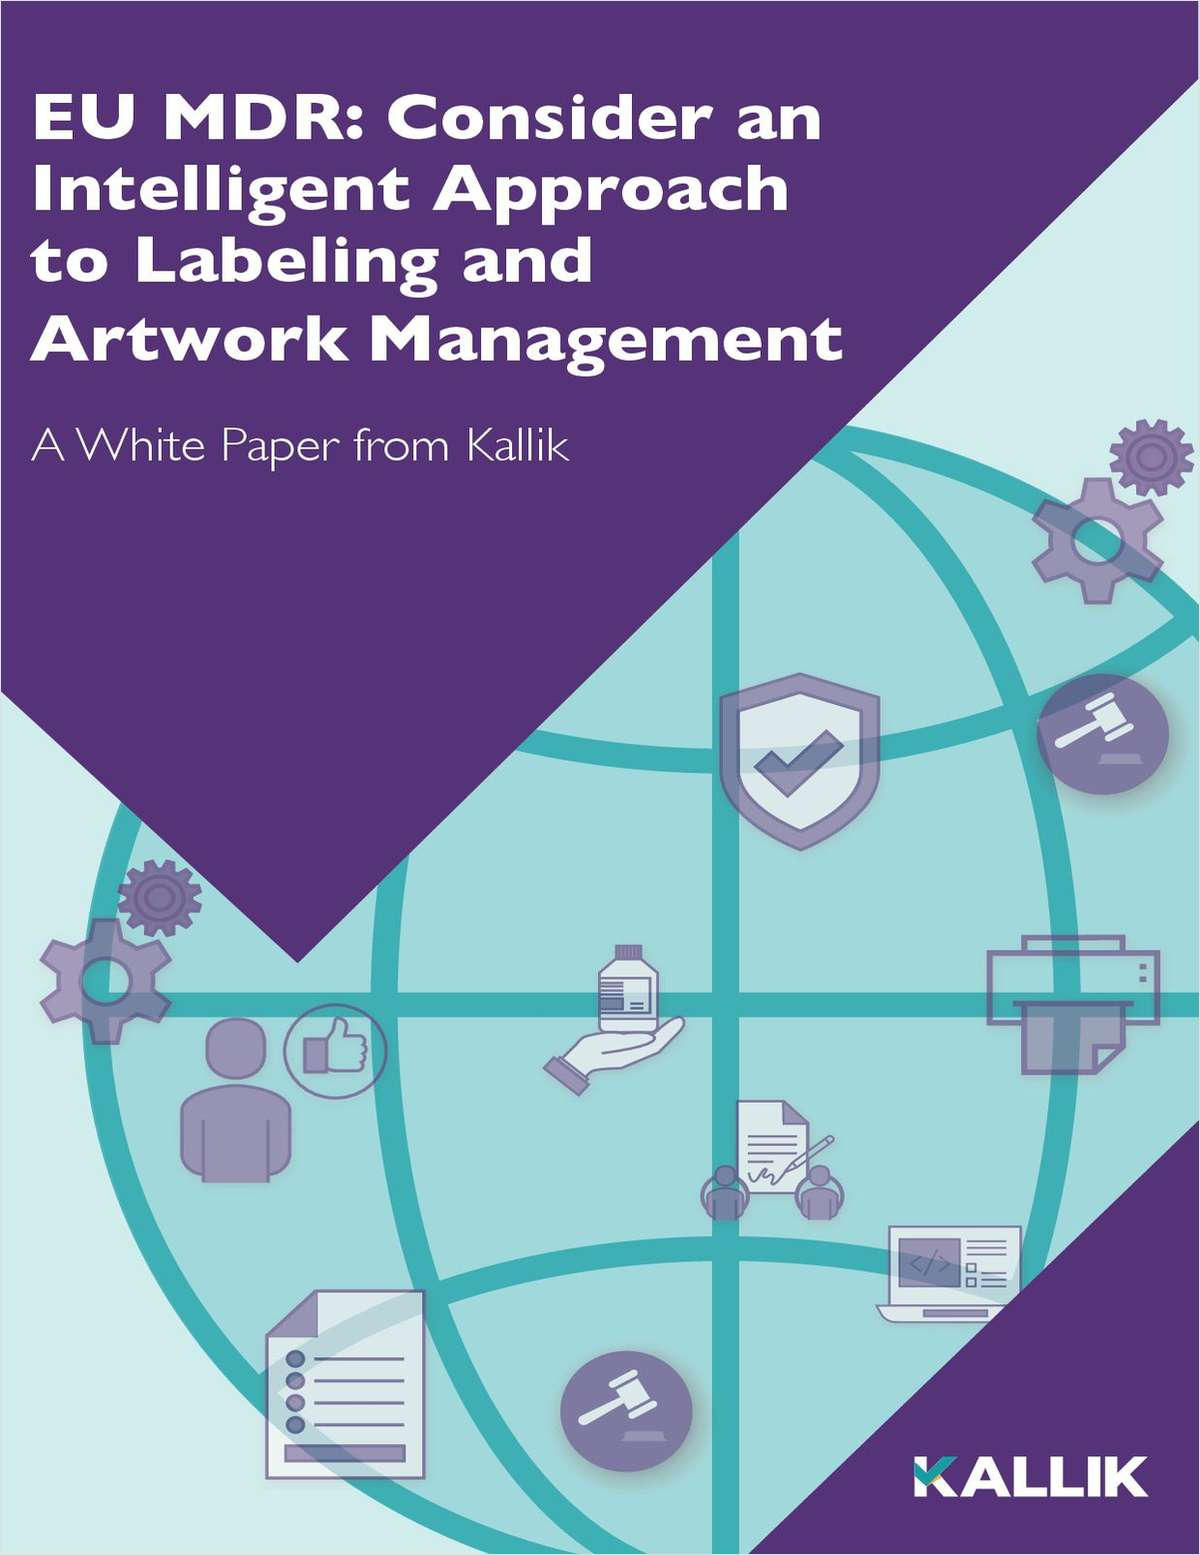 EU MDR: An Intelligent Approach to Labeling and Artwork Management